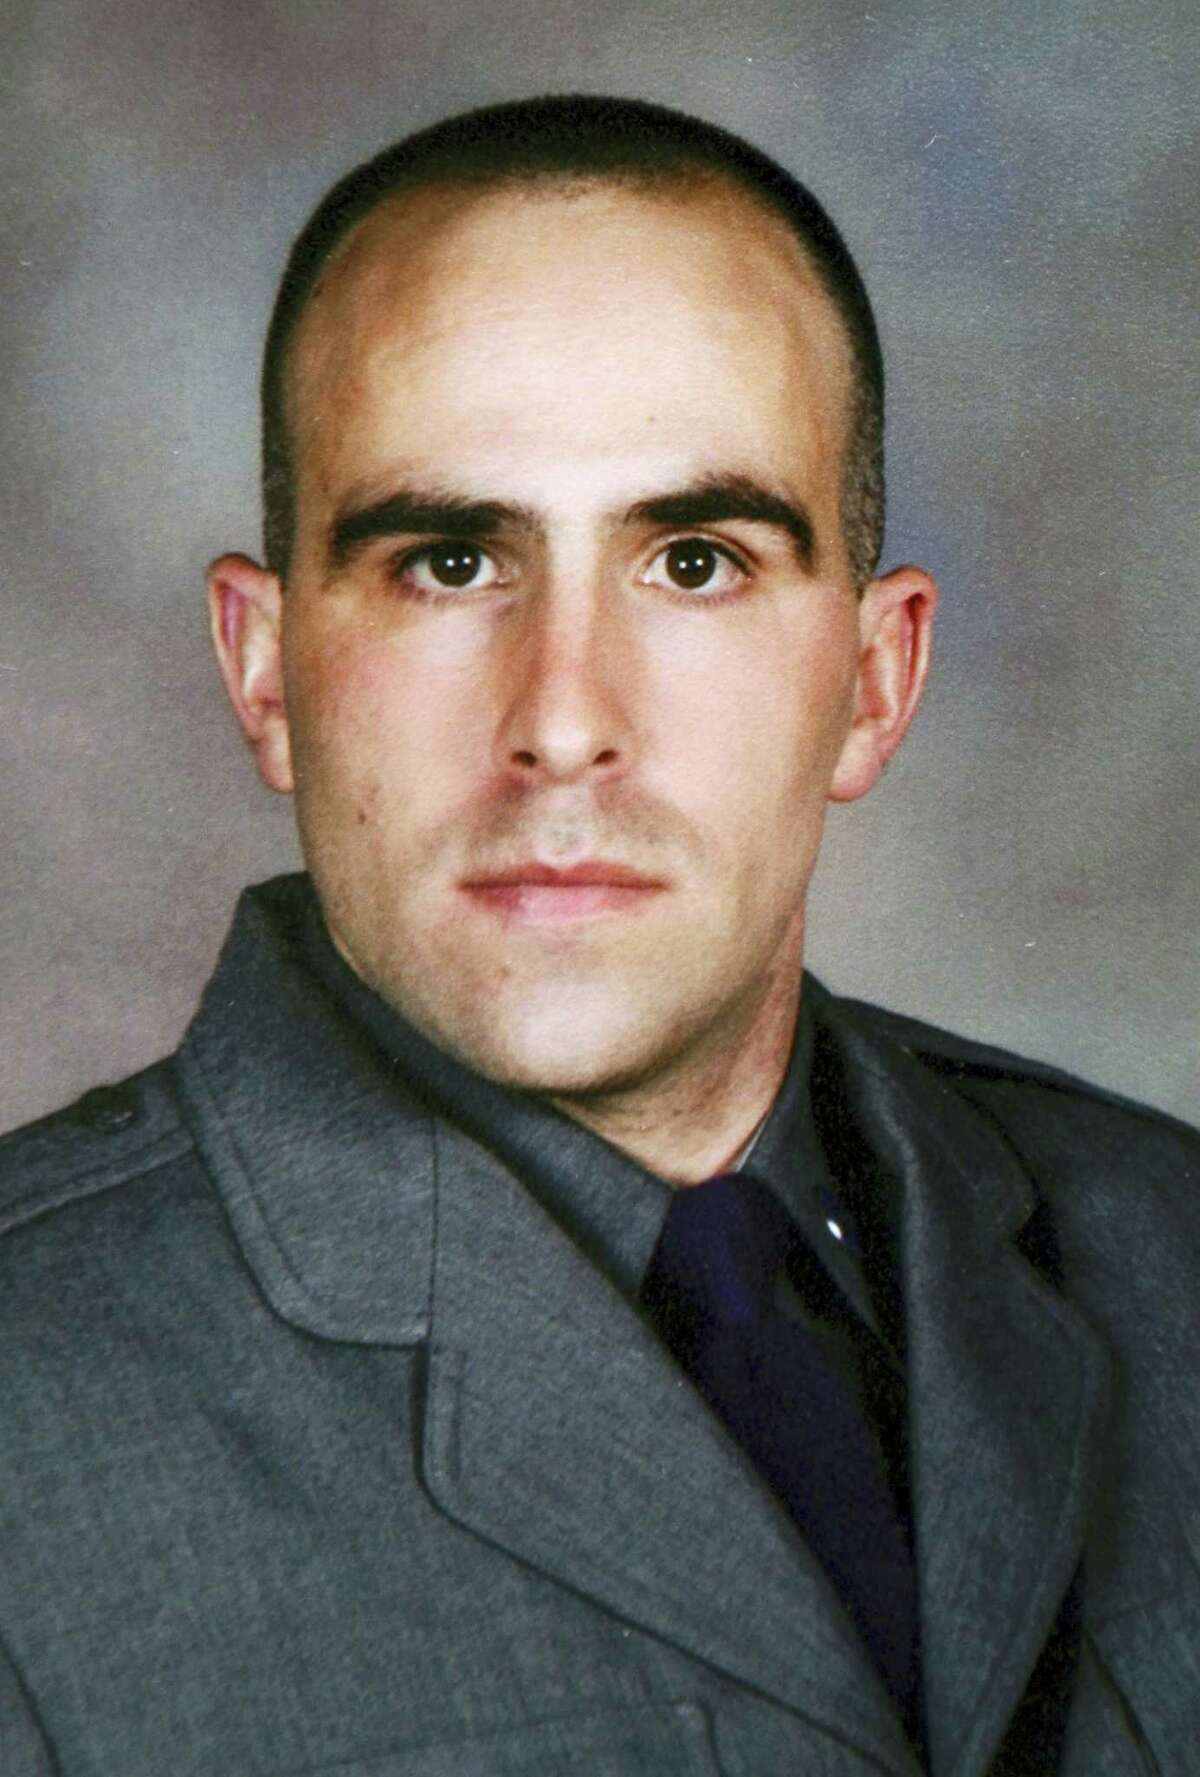 This undated photo provided by the New York State Police shows Trooper Joel Davis, who was fatally shot responding to a domestic dispute in Theresa, N.Y., on Sunday, July 9, 2017. Justin Walters, a U.S. Army soldier, was charged Monday, July 10 with murder in the shooting. (New York State Police via AP)